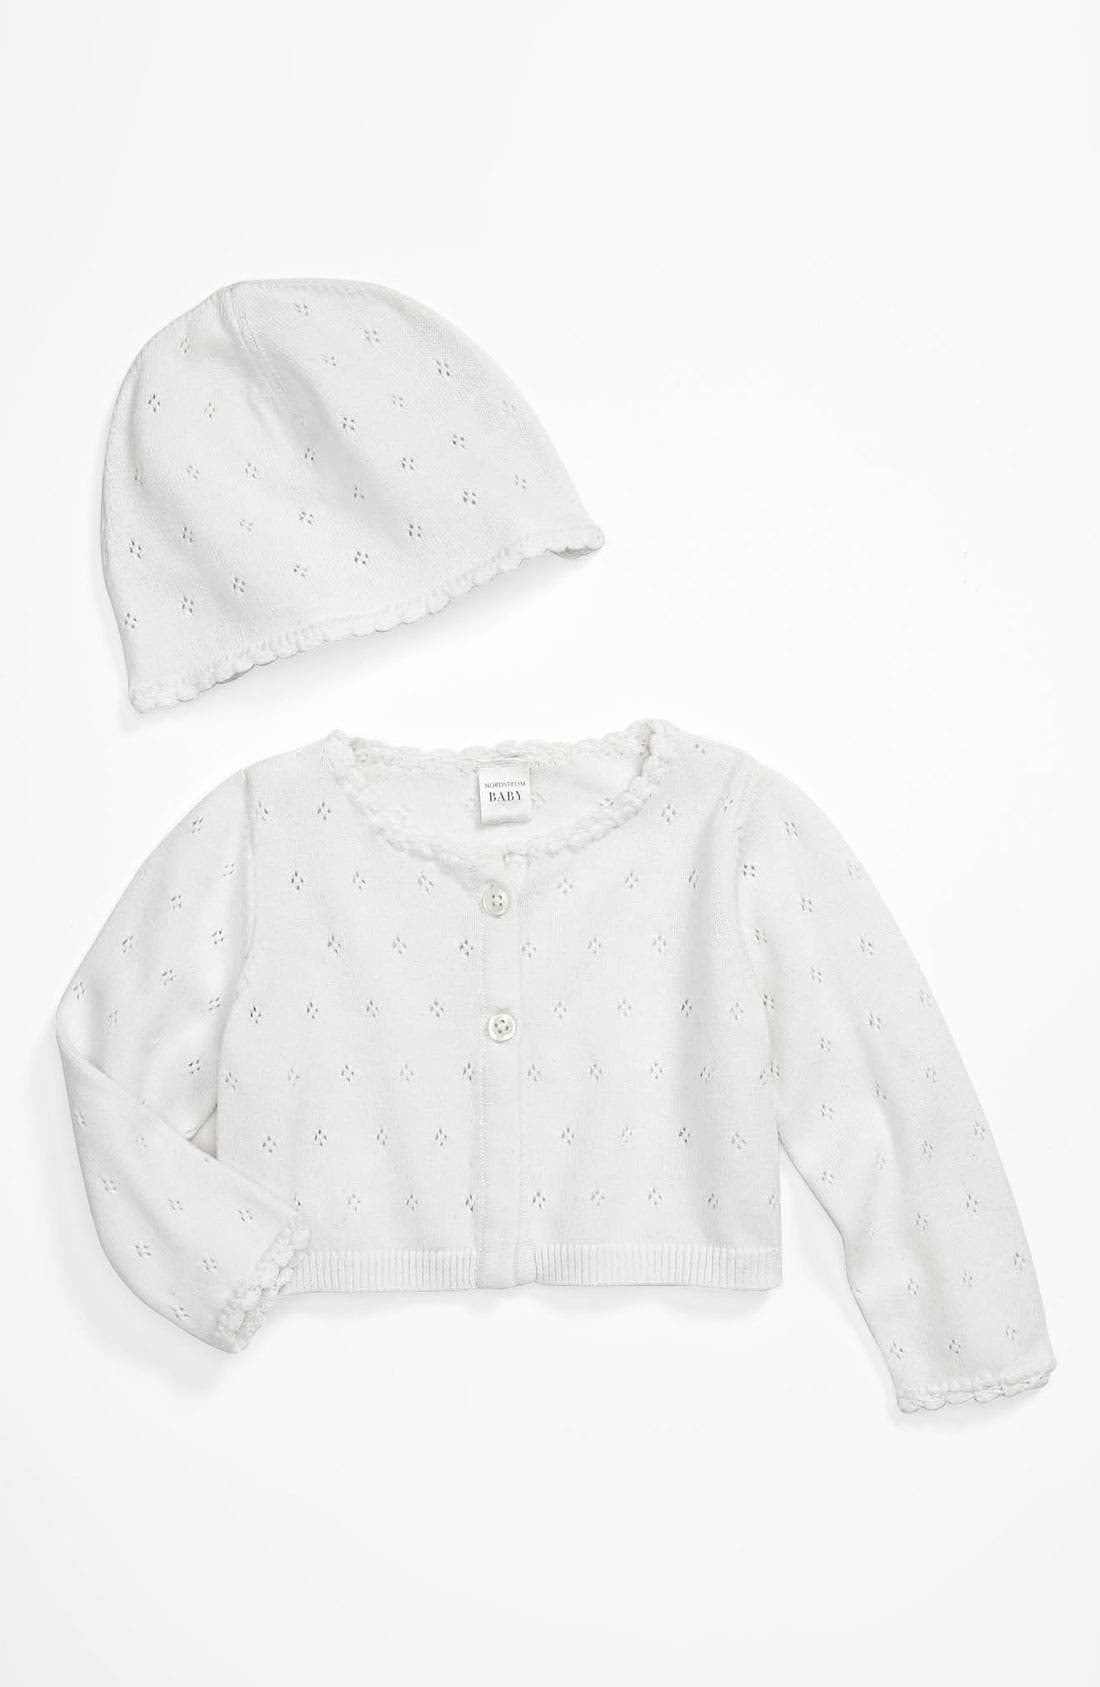 Alternate Image 1 Selected - Nordstrom Baby 'Sweet Pointelle' Cardigan & Hat (Infant)